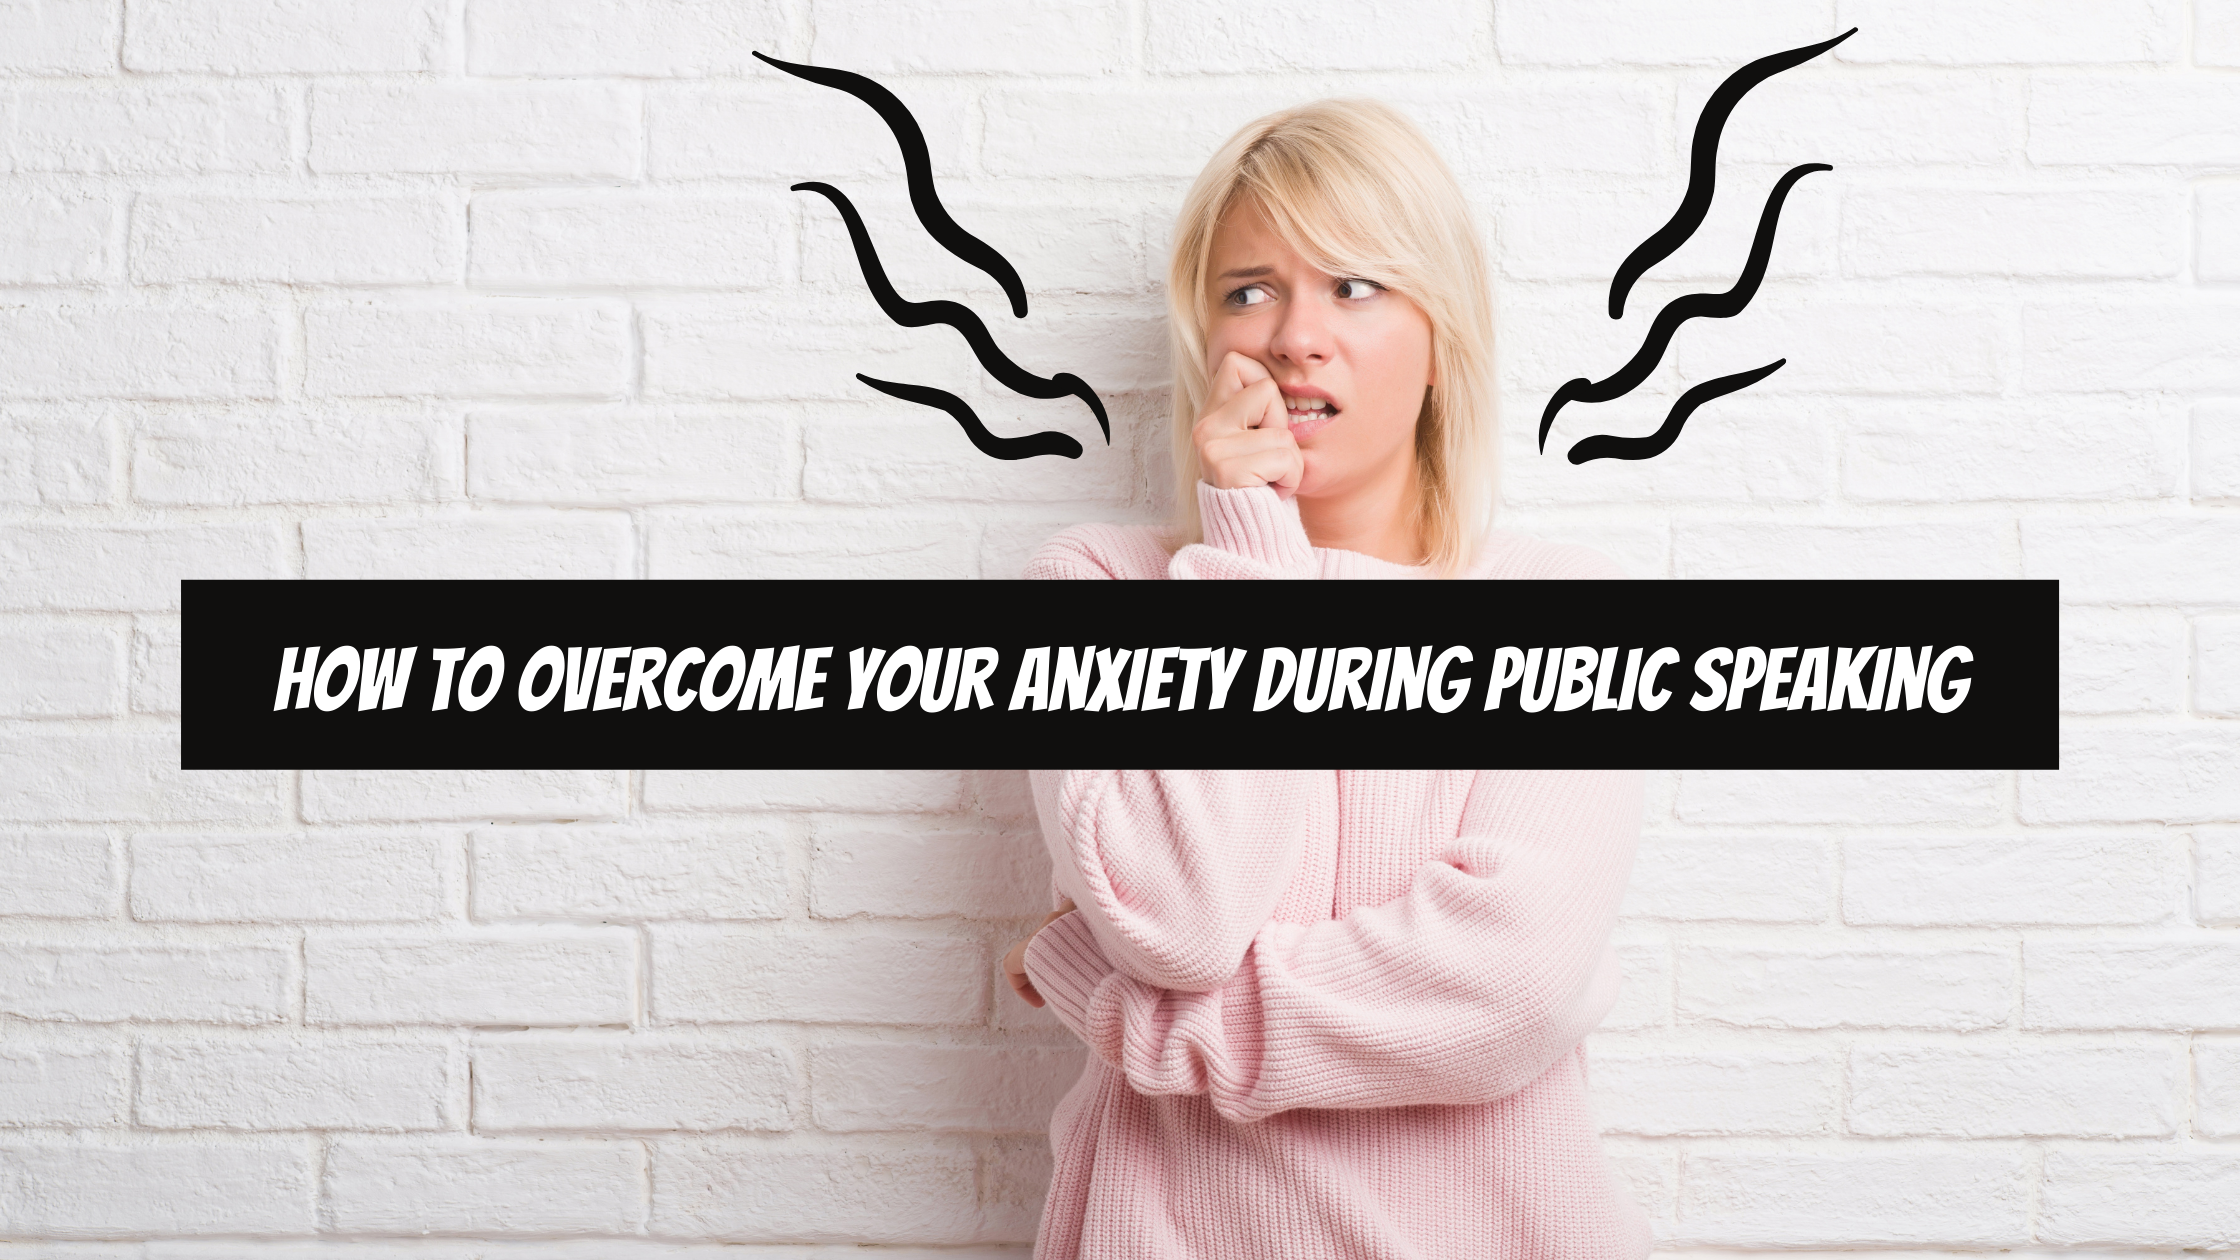 How To Overcome Your Anxiety During Public Speaking